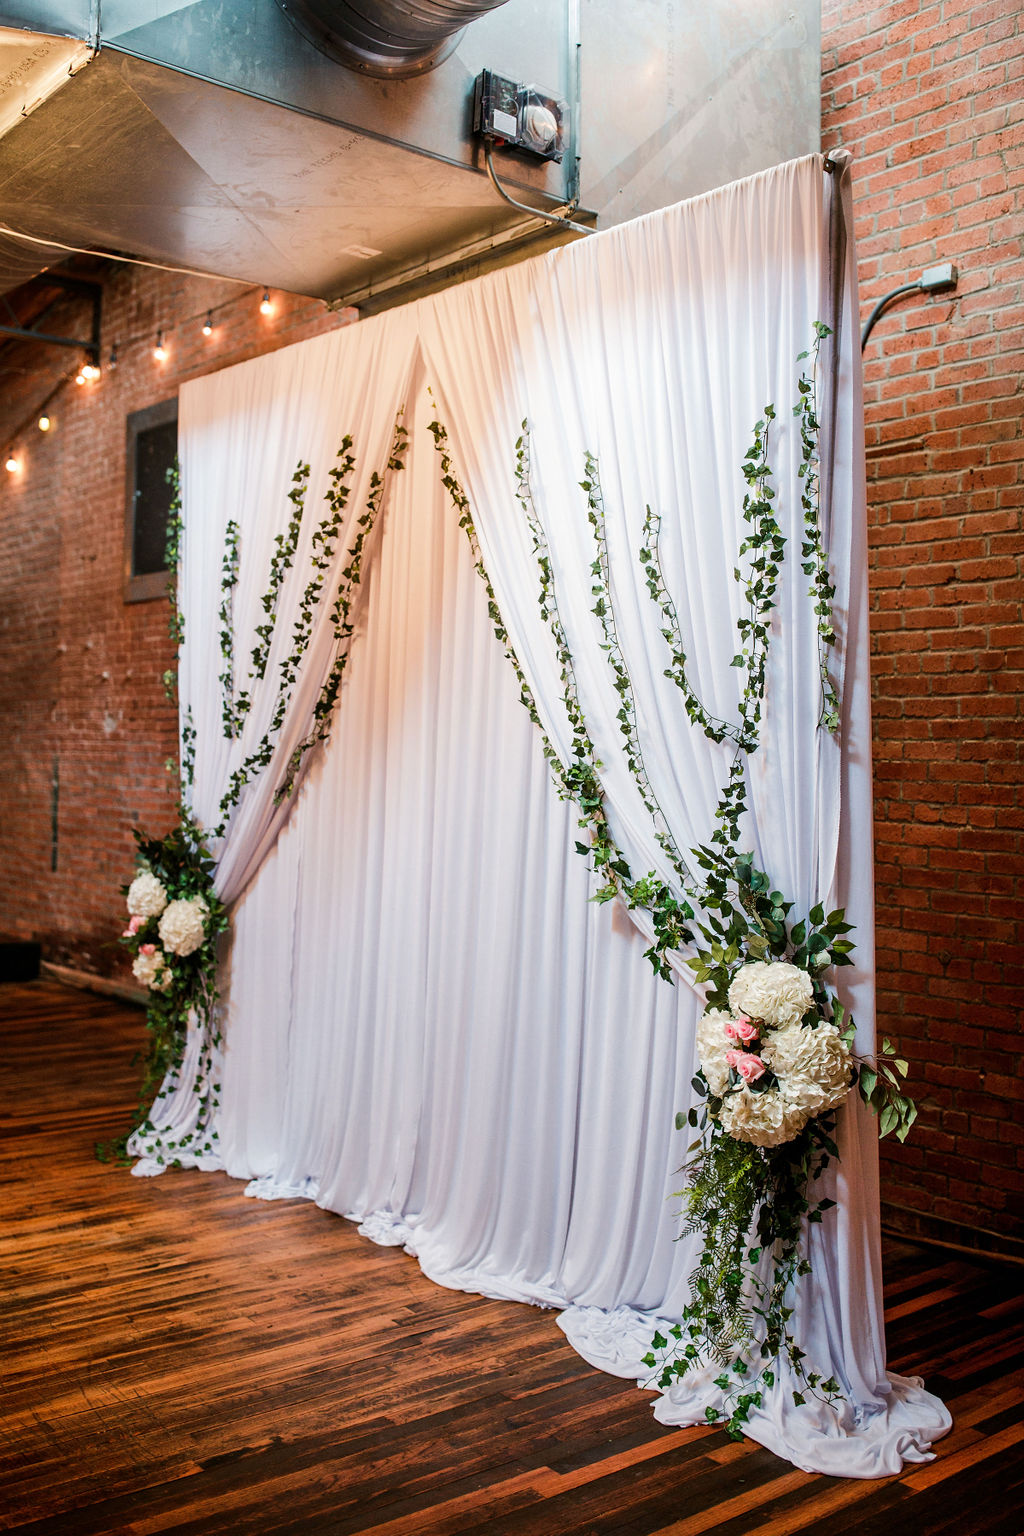 Wedding ceremony backdrop inspiration: Wedding at The Mill captured by John Myers Photography featured on Nashville Bride Guide